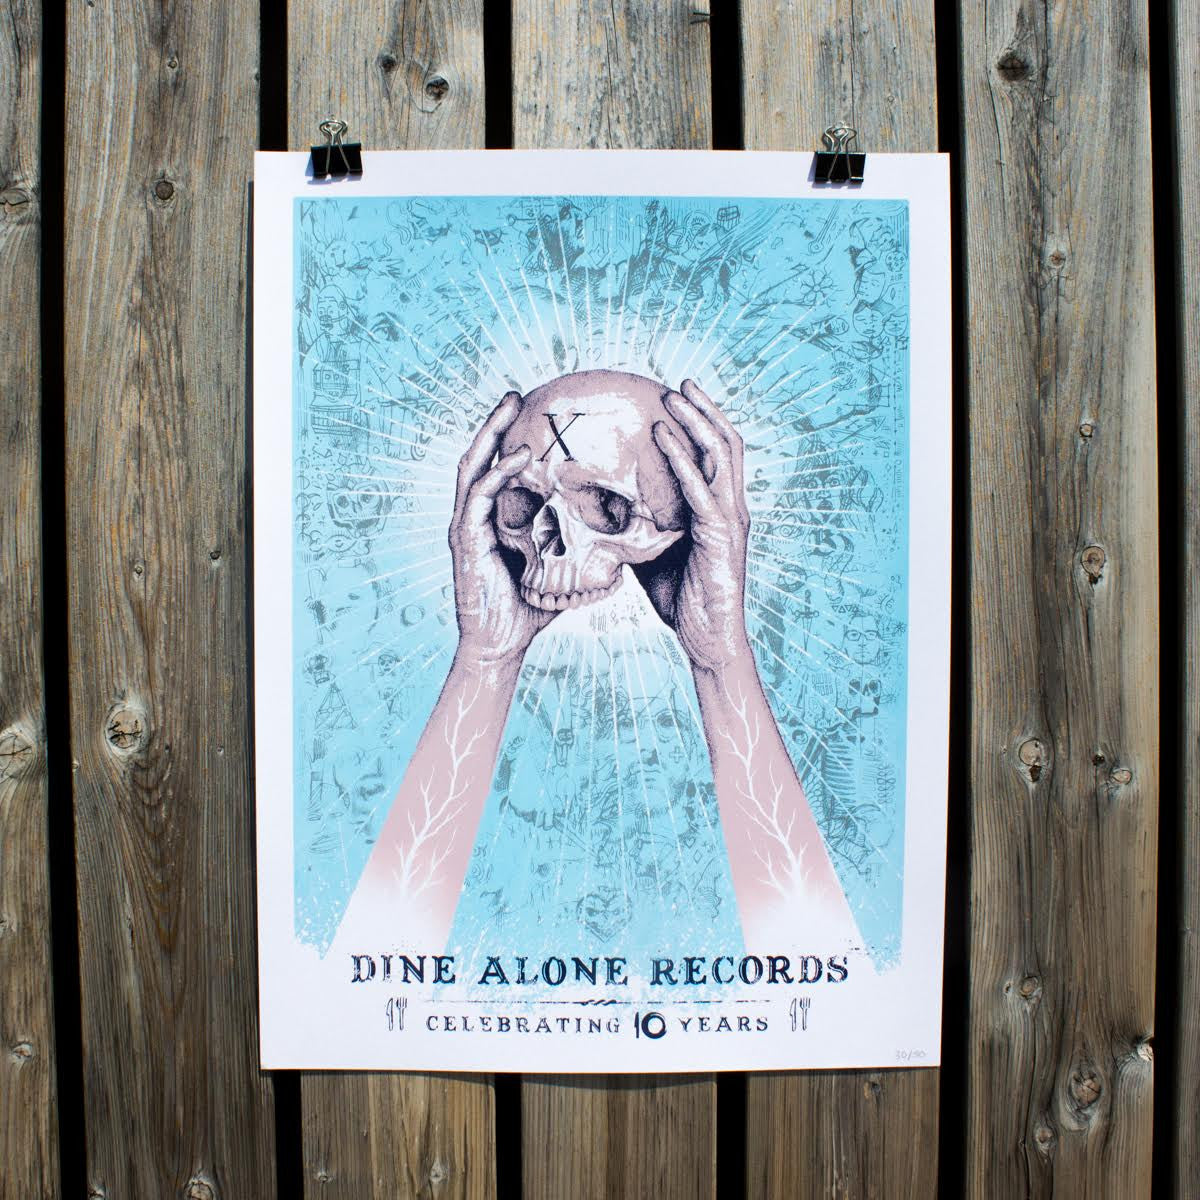 Paul Jackson DA10 Poster-Dine Alone Records-Dine Alone Records